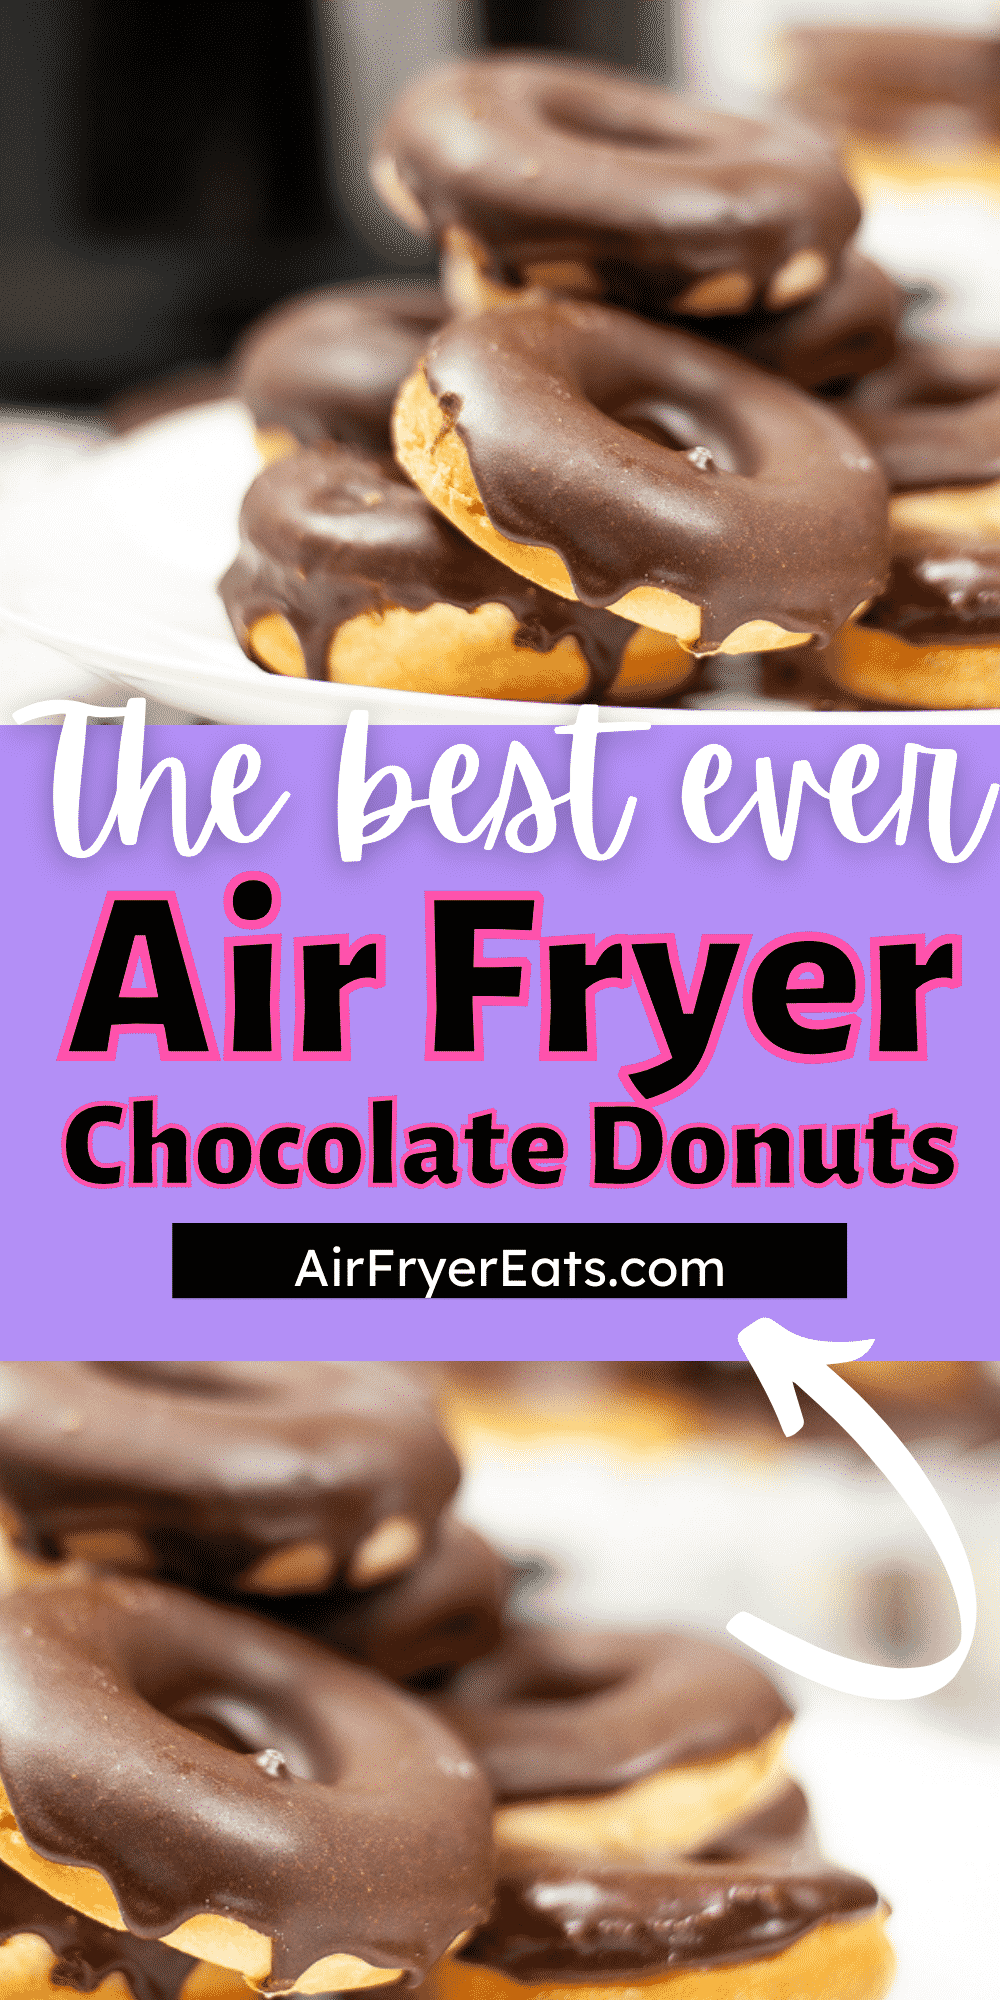 Air Fryer Chocolate Glazed Donuts are a copycat recipe of the famous Krispy Kreme donuts that everyone loves. Learn how to make yeasted donuts from scratch, in your air fryer, then top them with creamy chocolate frosting. #donuts via @vegetarianmamma